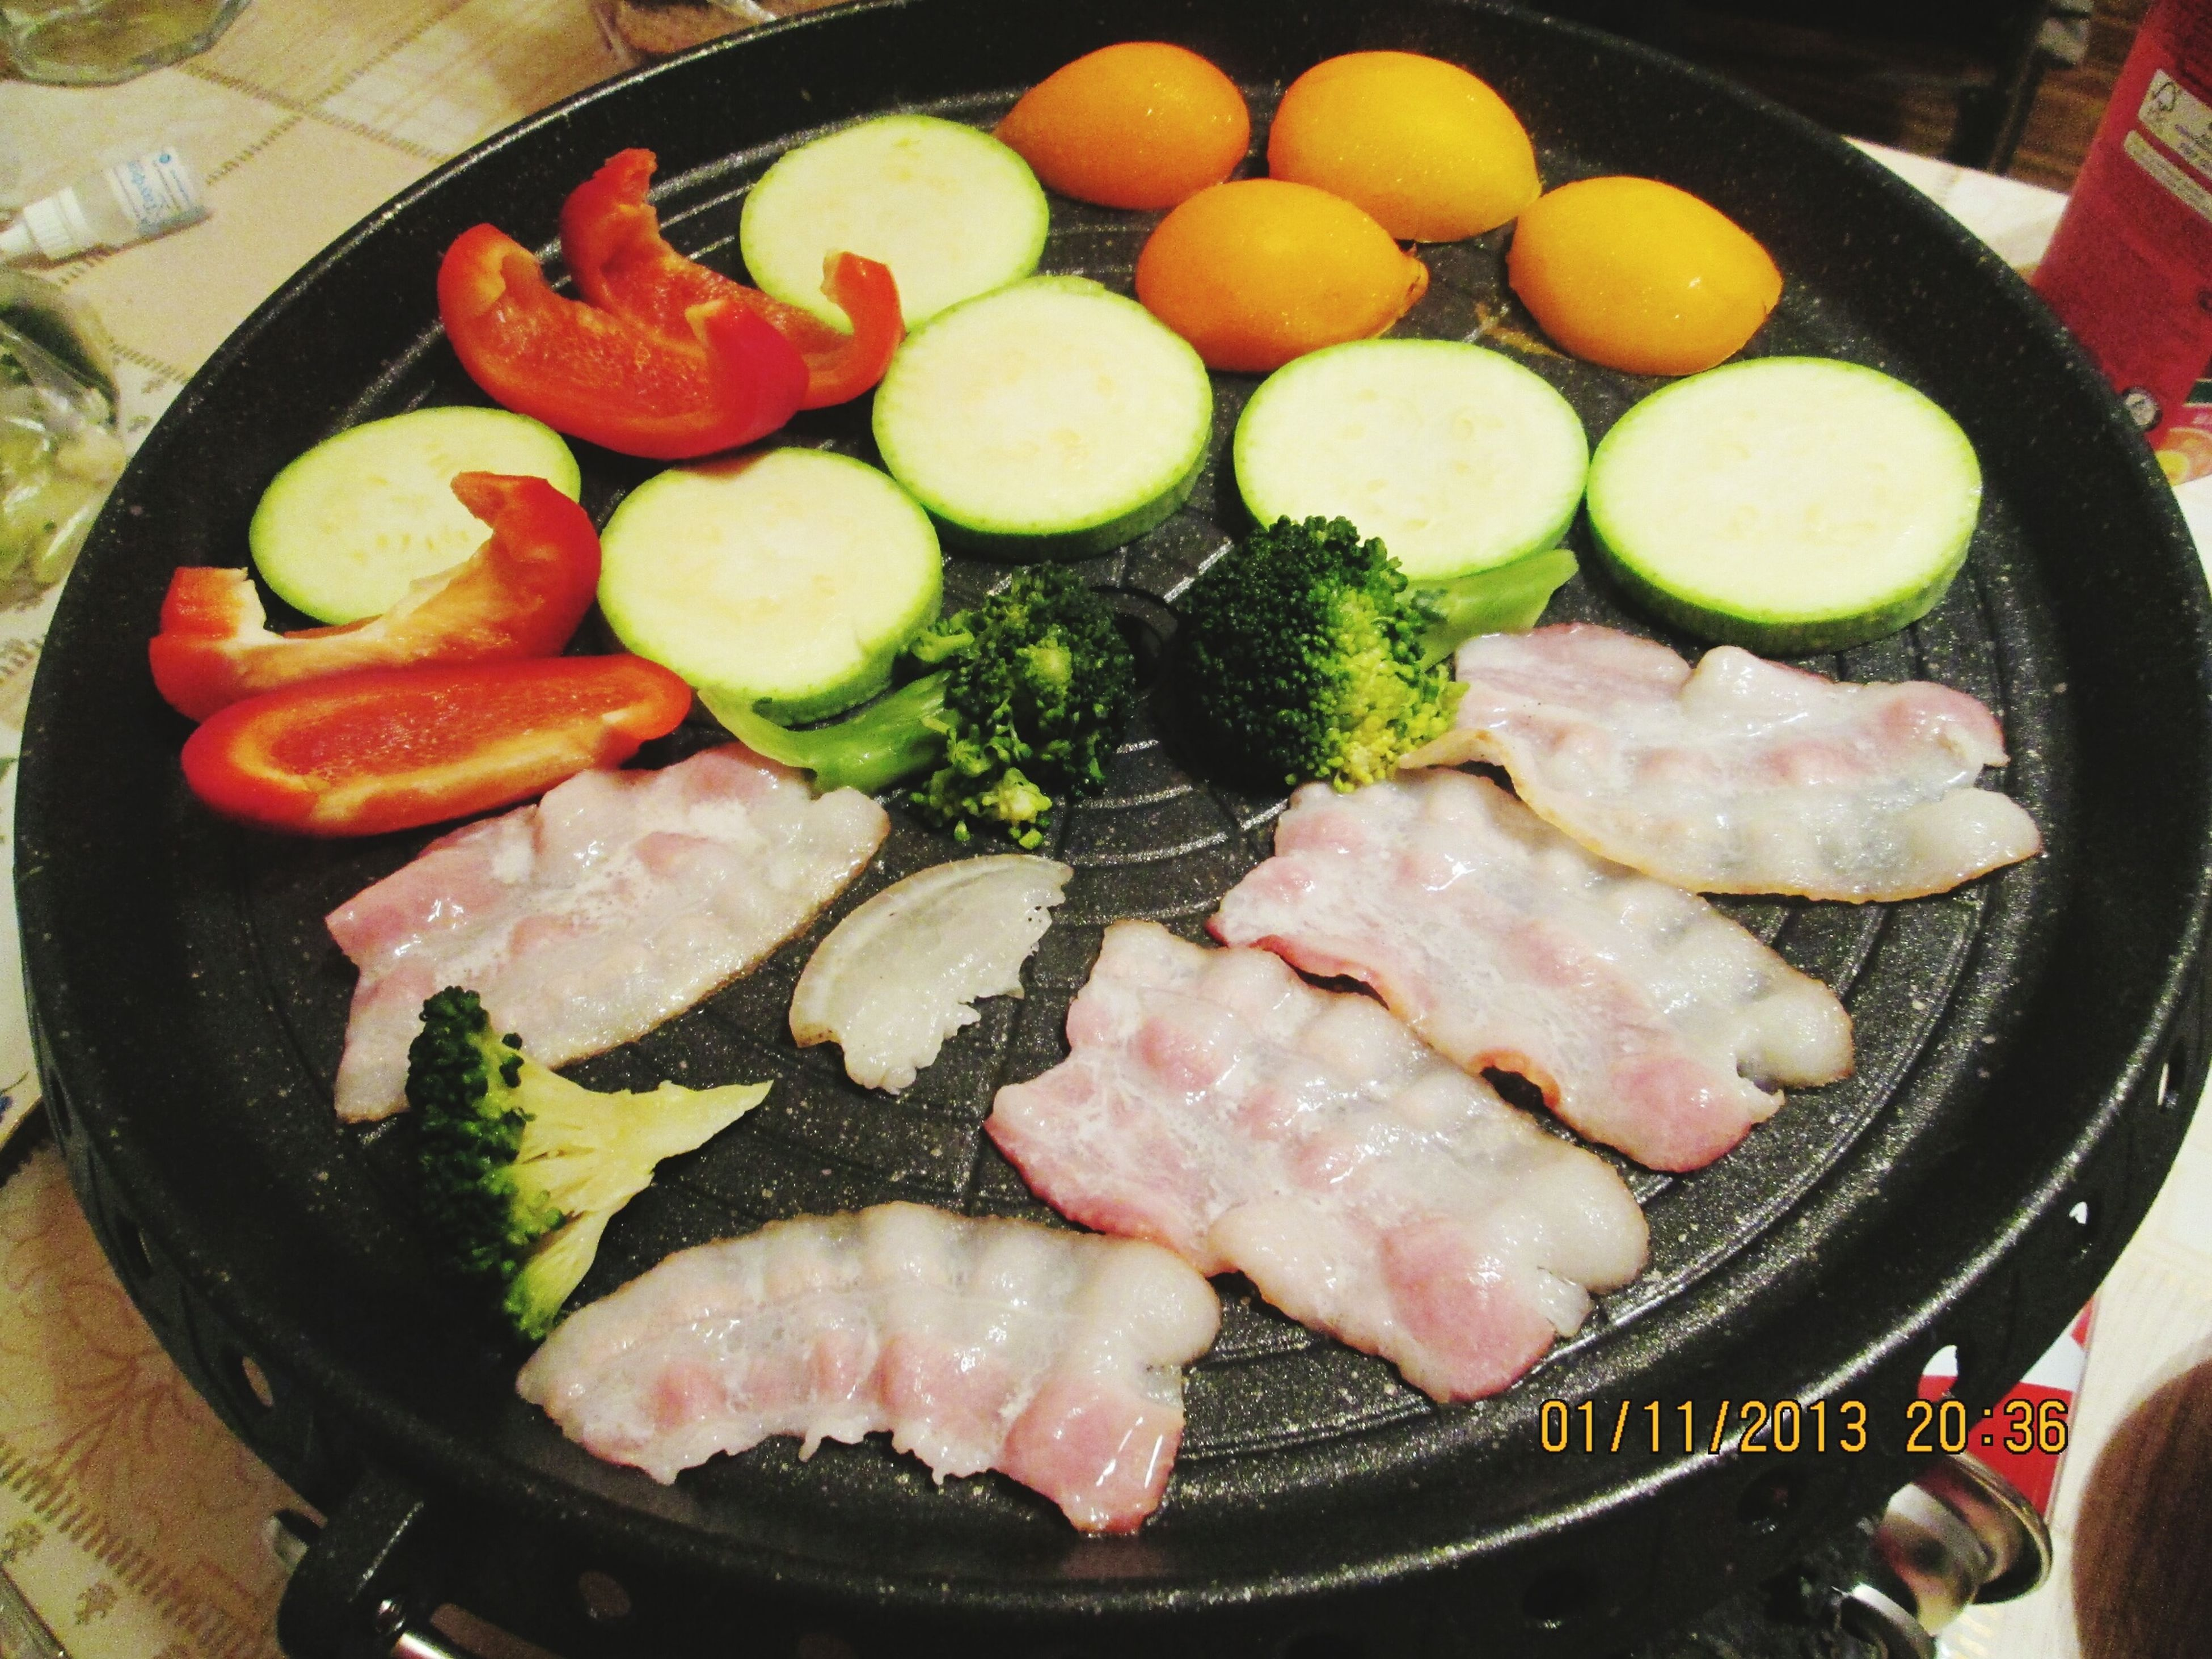 food and drink, food, freshness, healthy eating, indoors, meat, cooking, vegetable, preparation, seafood, high angle view, still life, meal, preparing food, ready-to-eat, close-up, frying pan, cooking pan, healthy lifestyle, fish